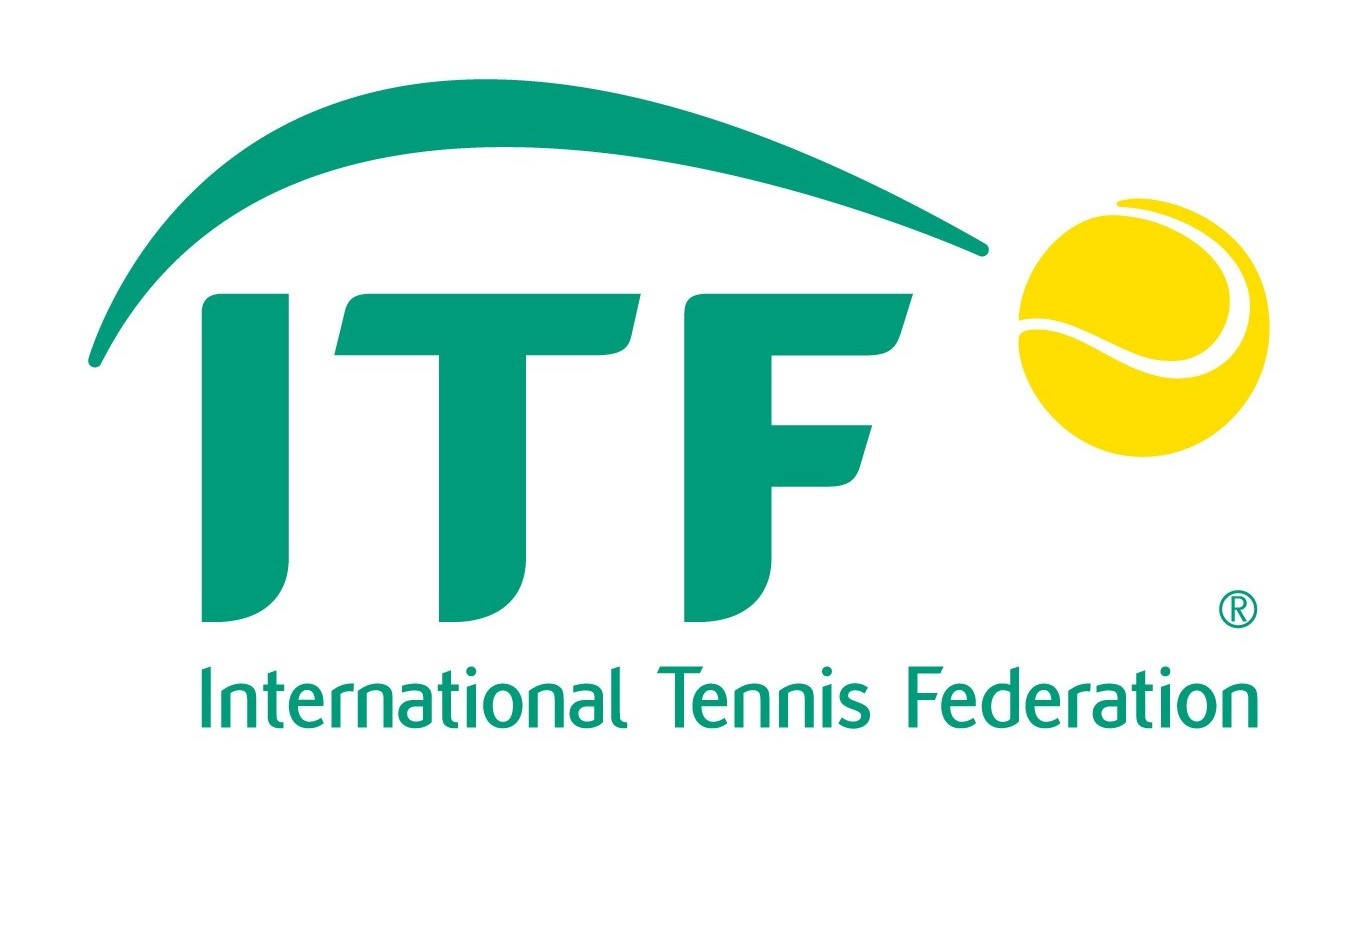 1°BNL Open - ITF futures